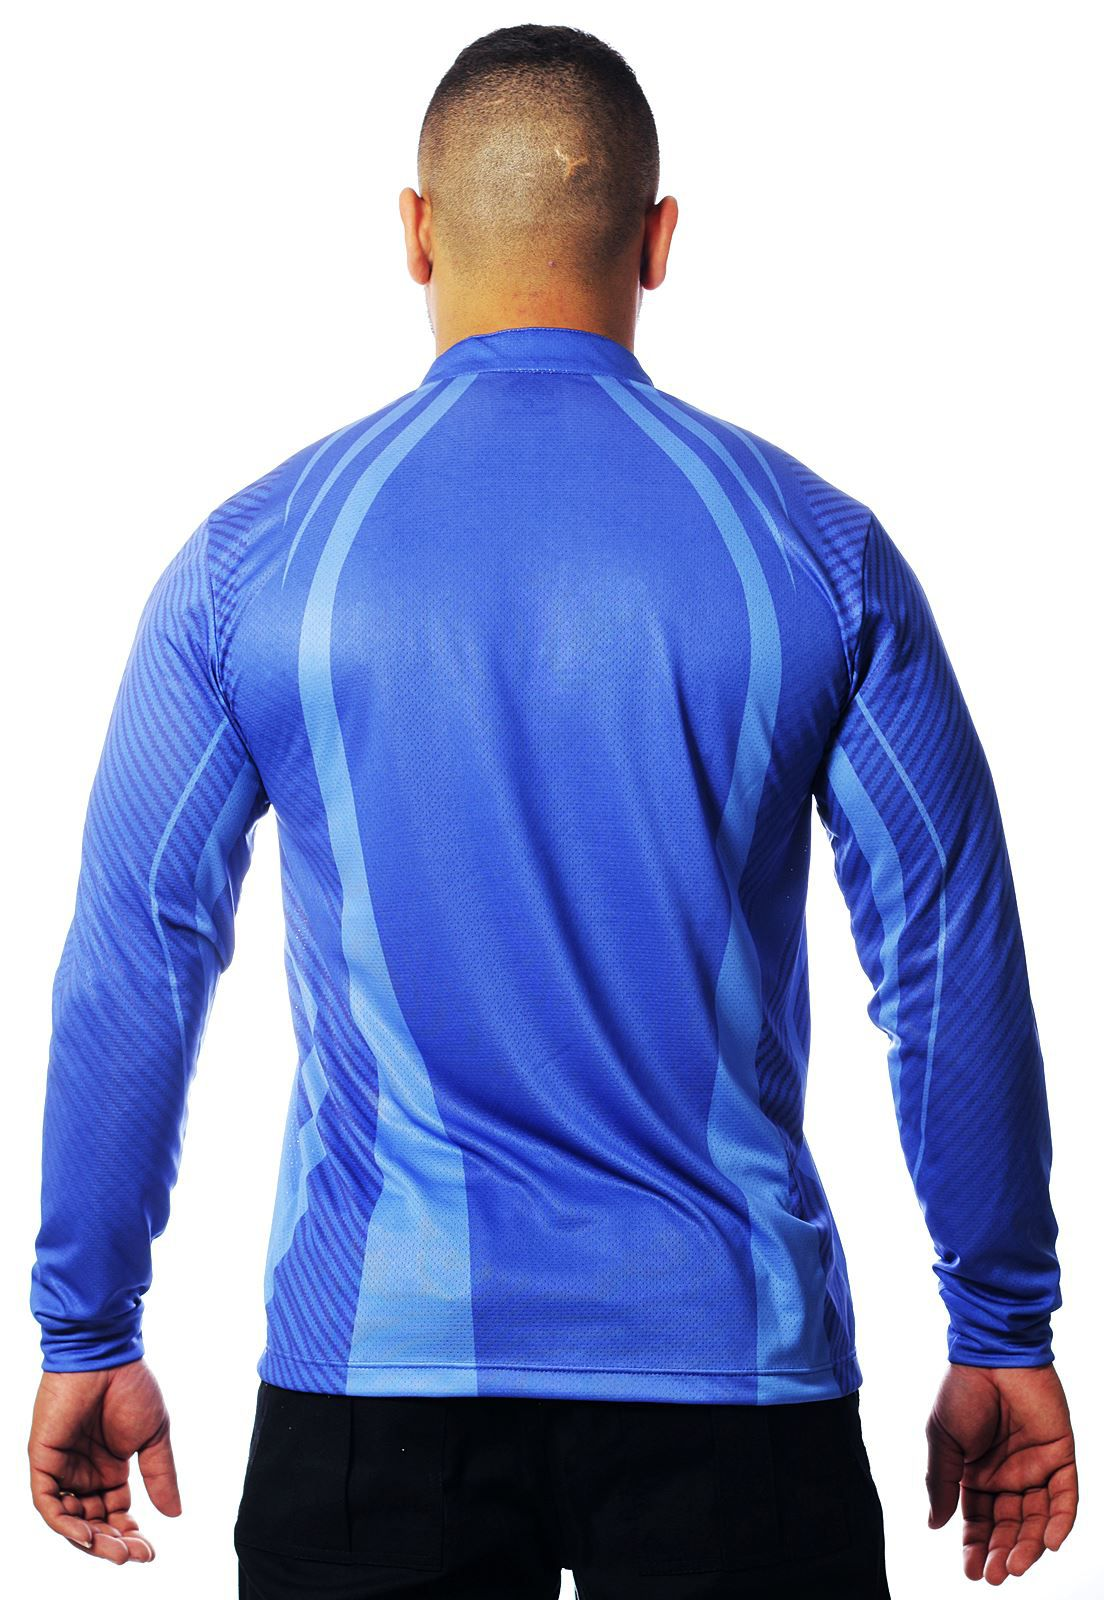 CAMISA DE PESCA MASCULINA BLUE TECHNOLOGY  - REAL HUNTER OUTDOORS